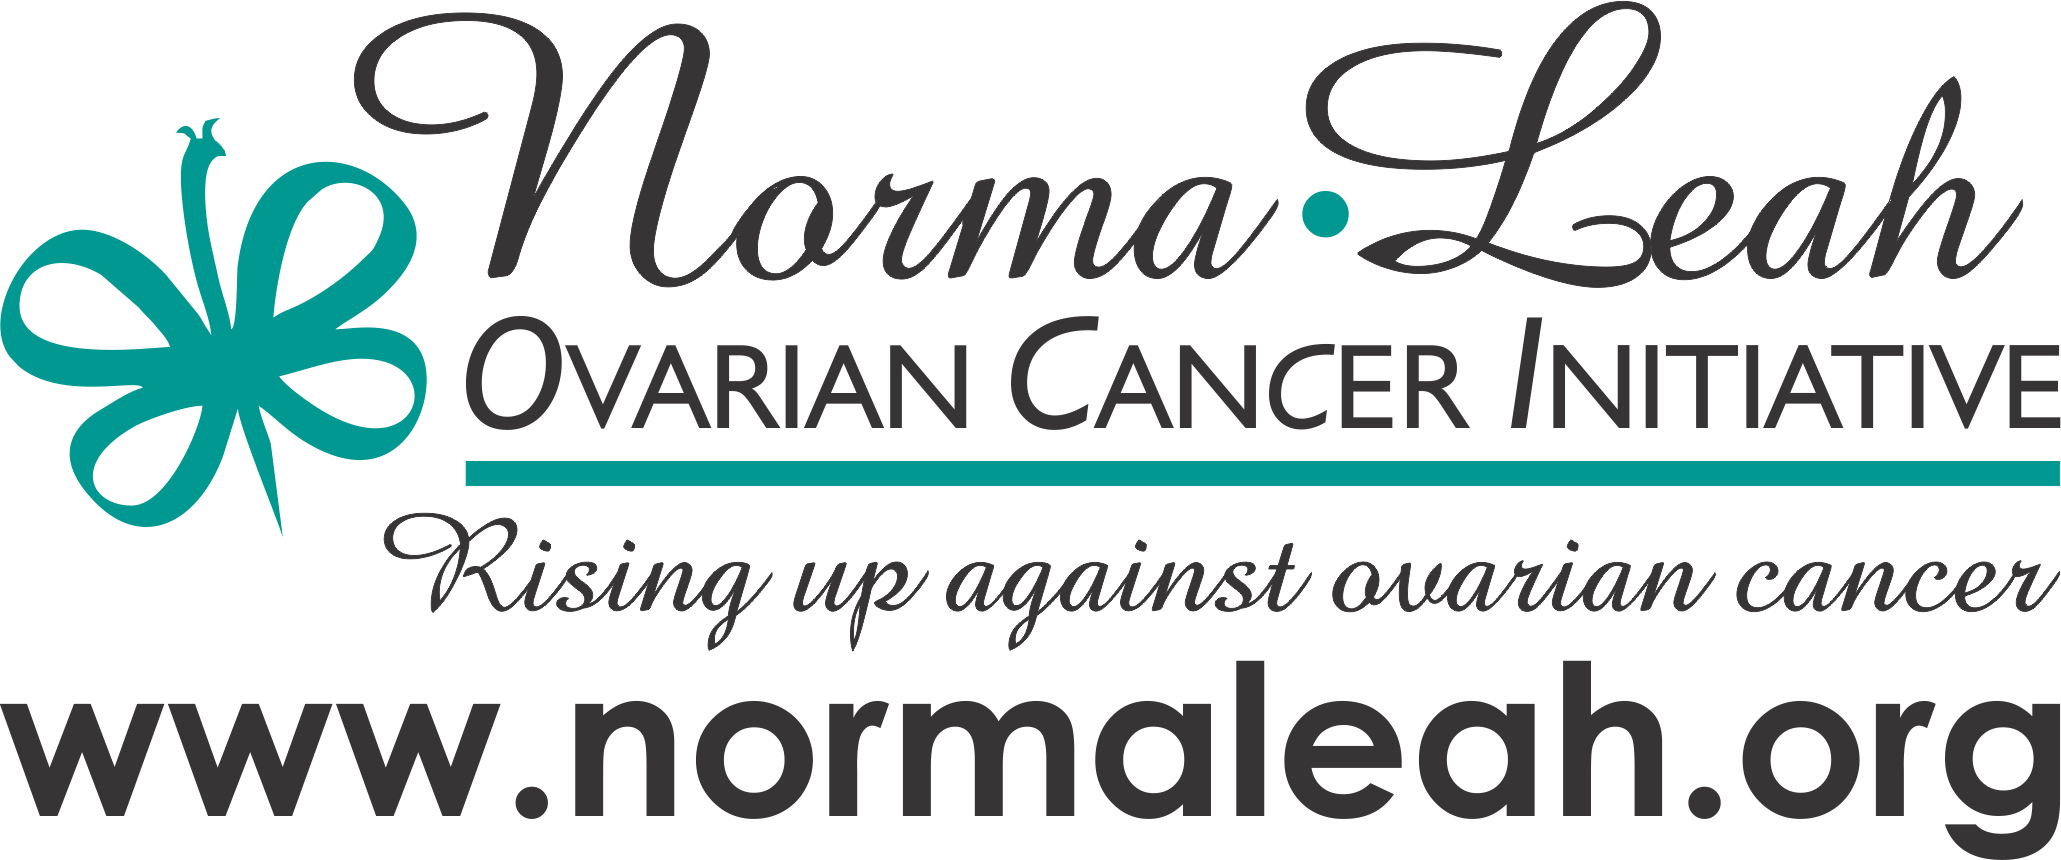 NormaLeah Ovarian Cancer Initiative.png